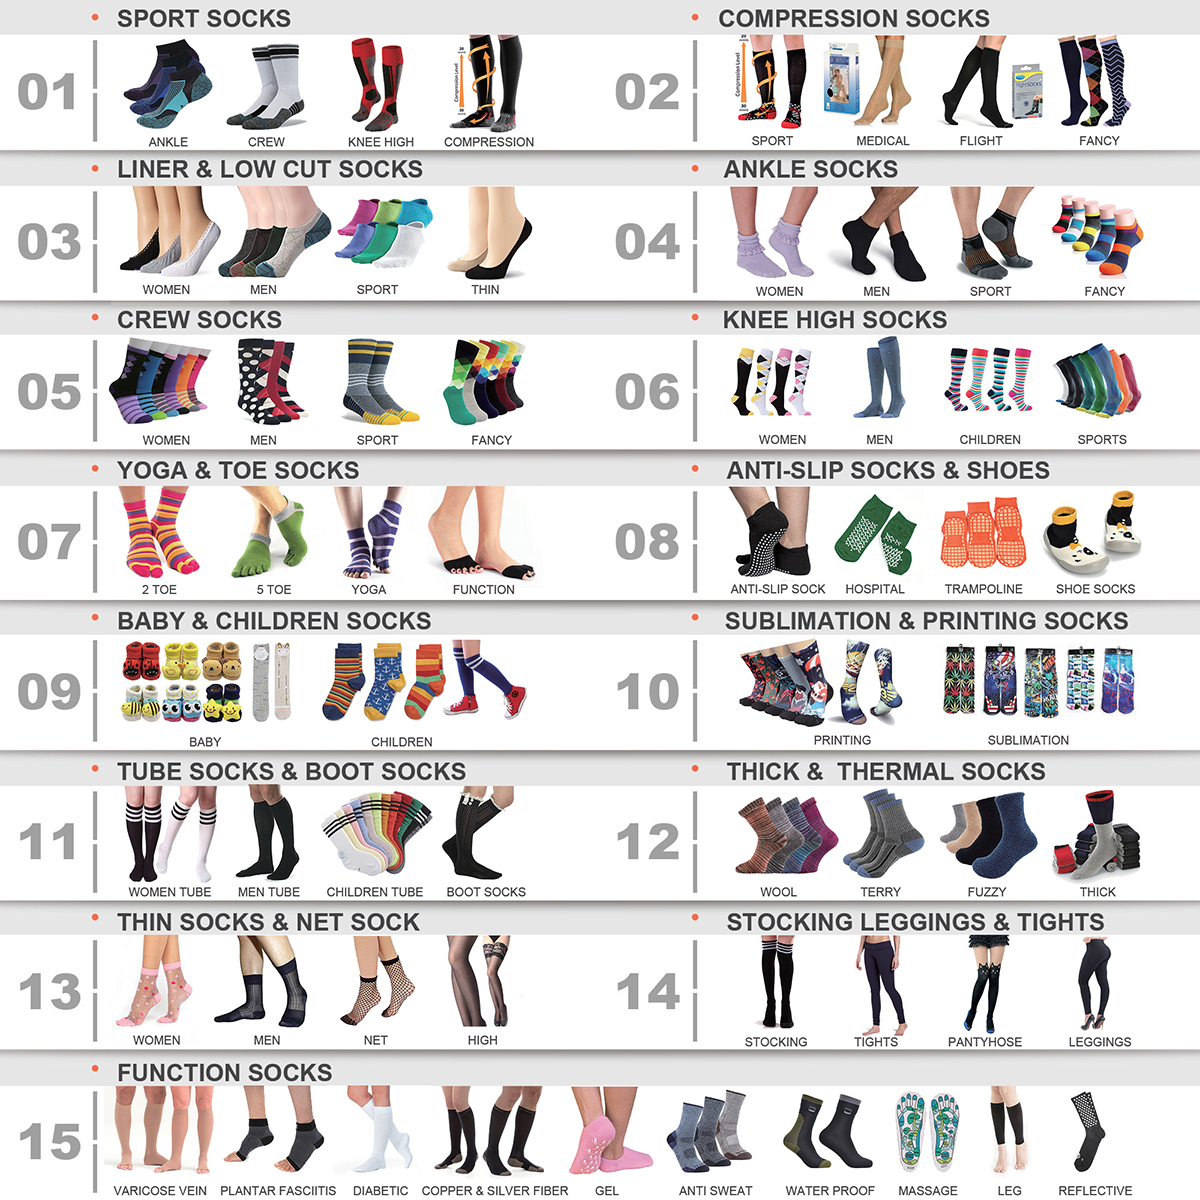 DL-I-0296 women thin ankle socks sexy women nylon ankle socks women sexy ankle socks